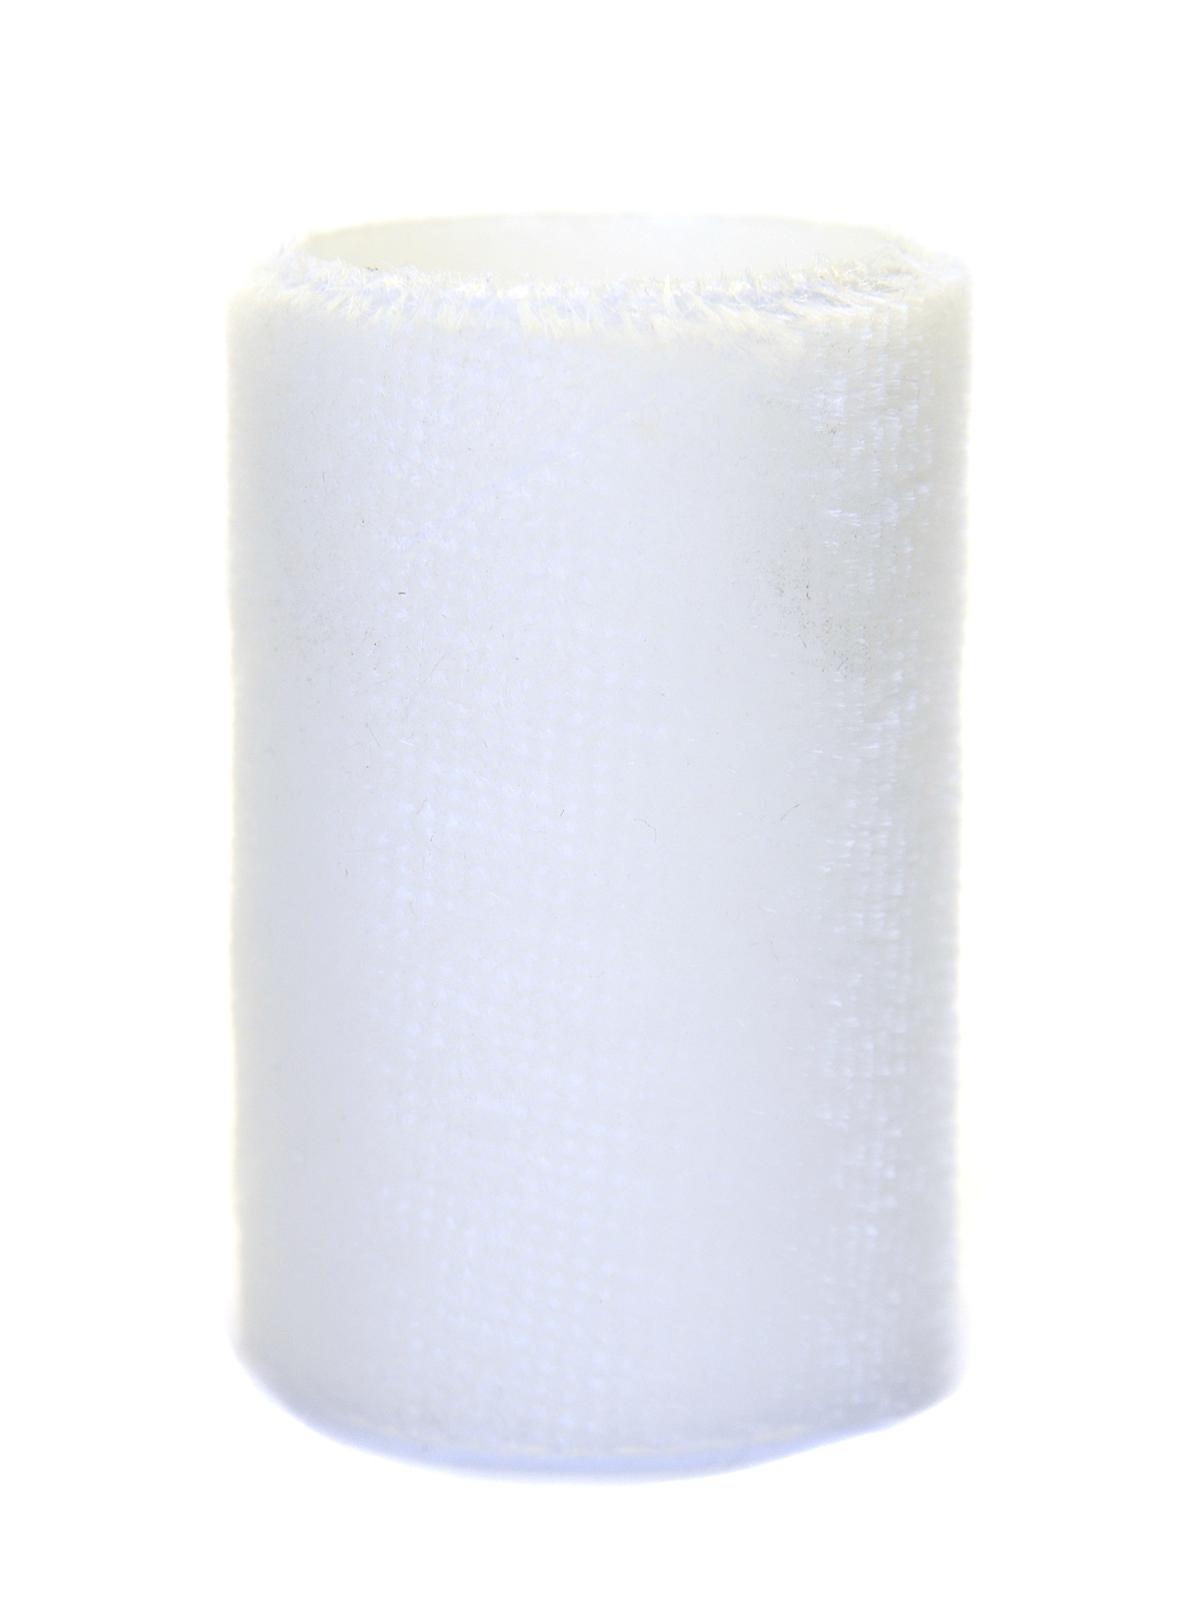 3 in. Adhesive Applicator Roller Cover